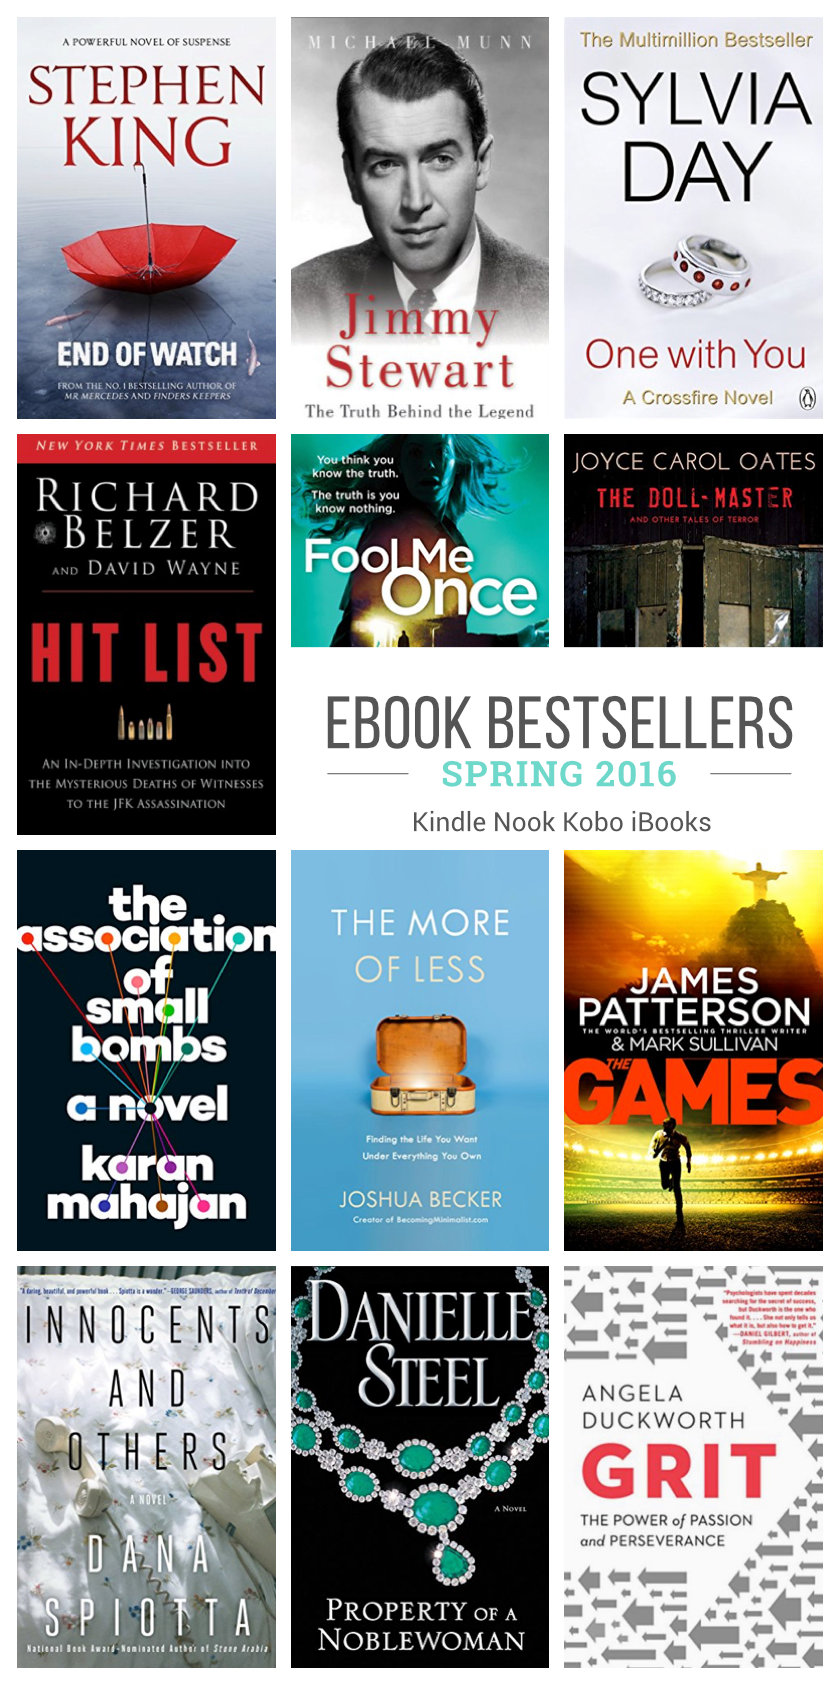 Ebook bestsellers of spring 2016